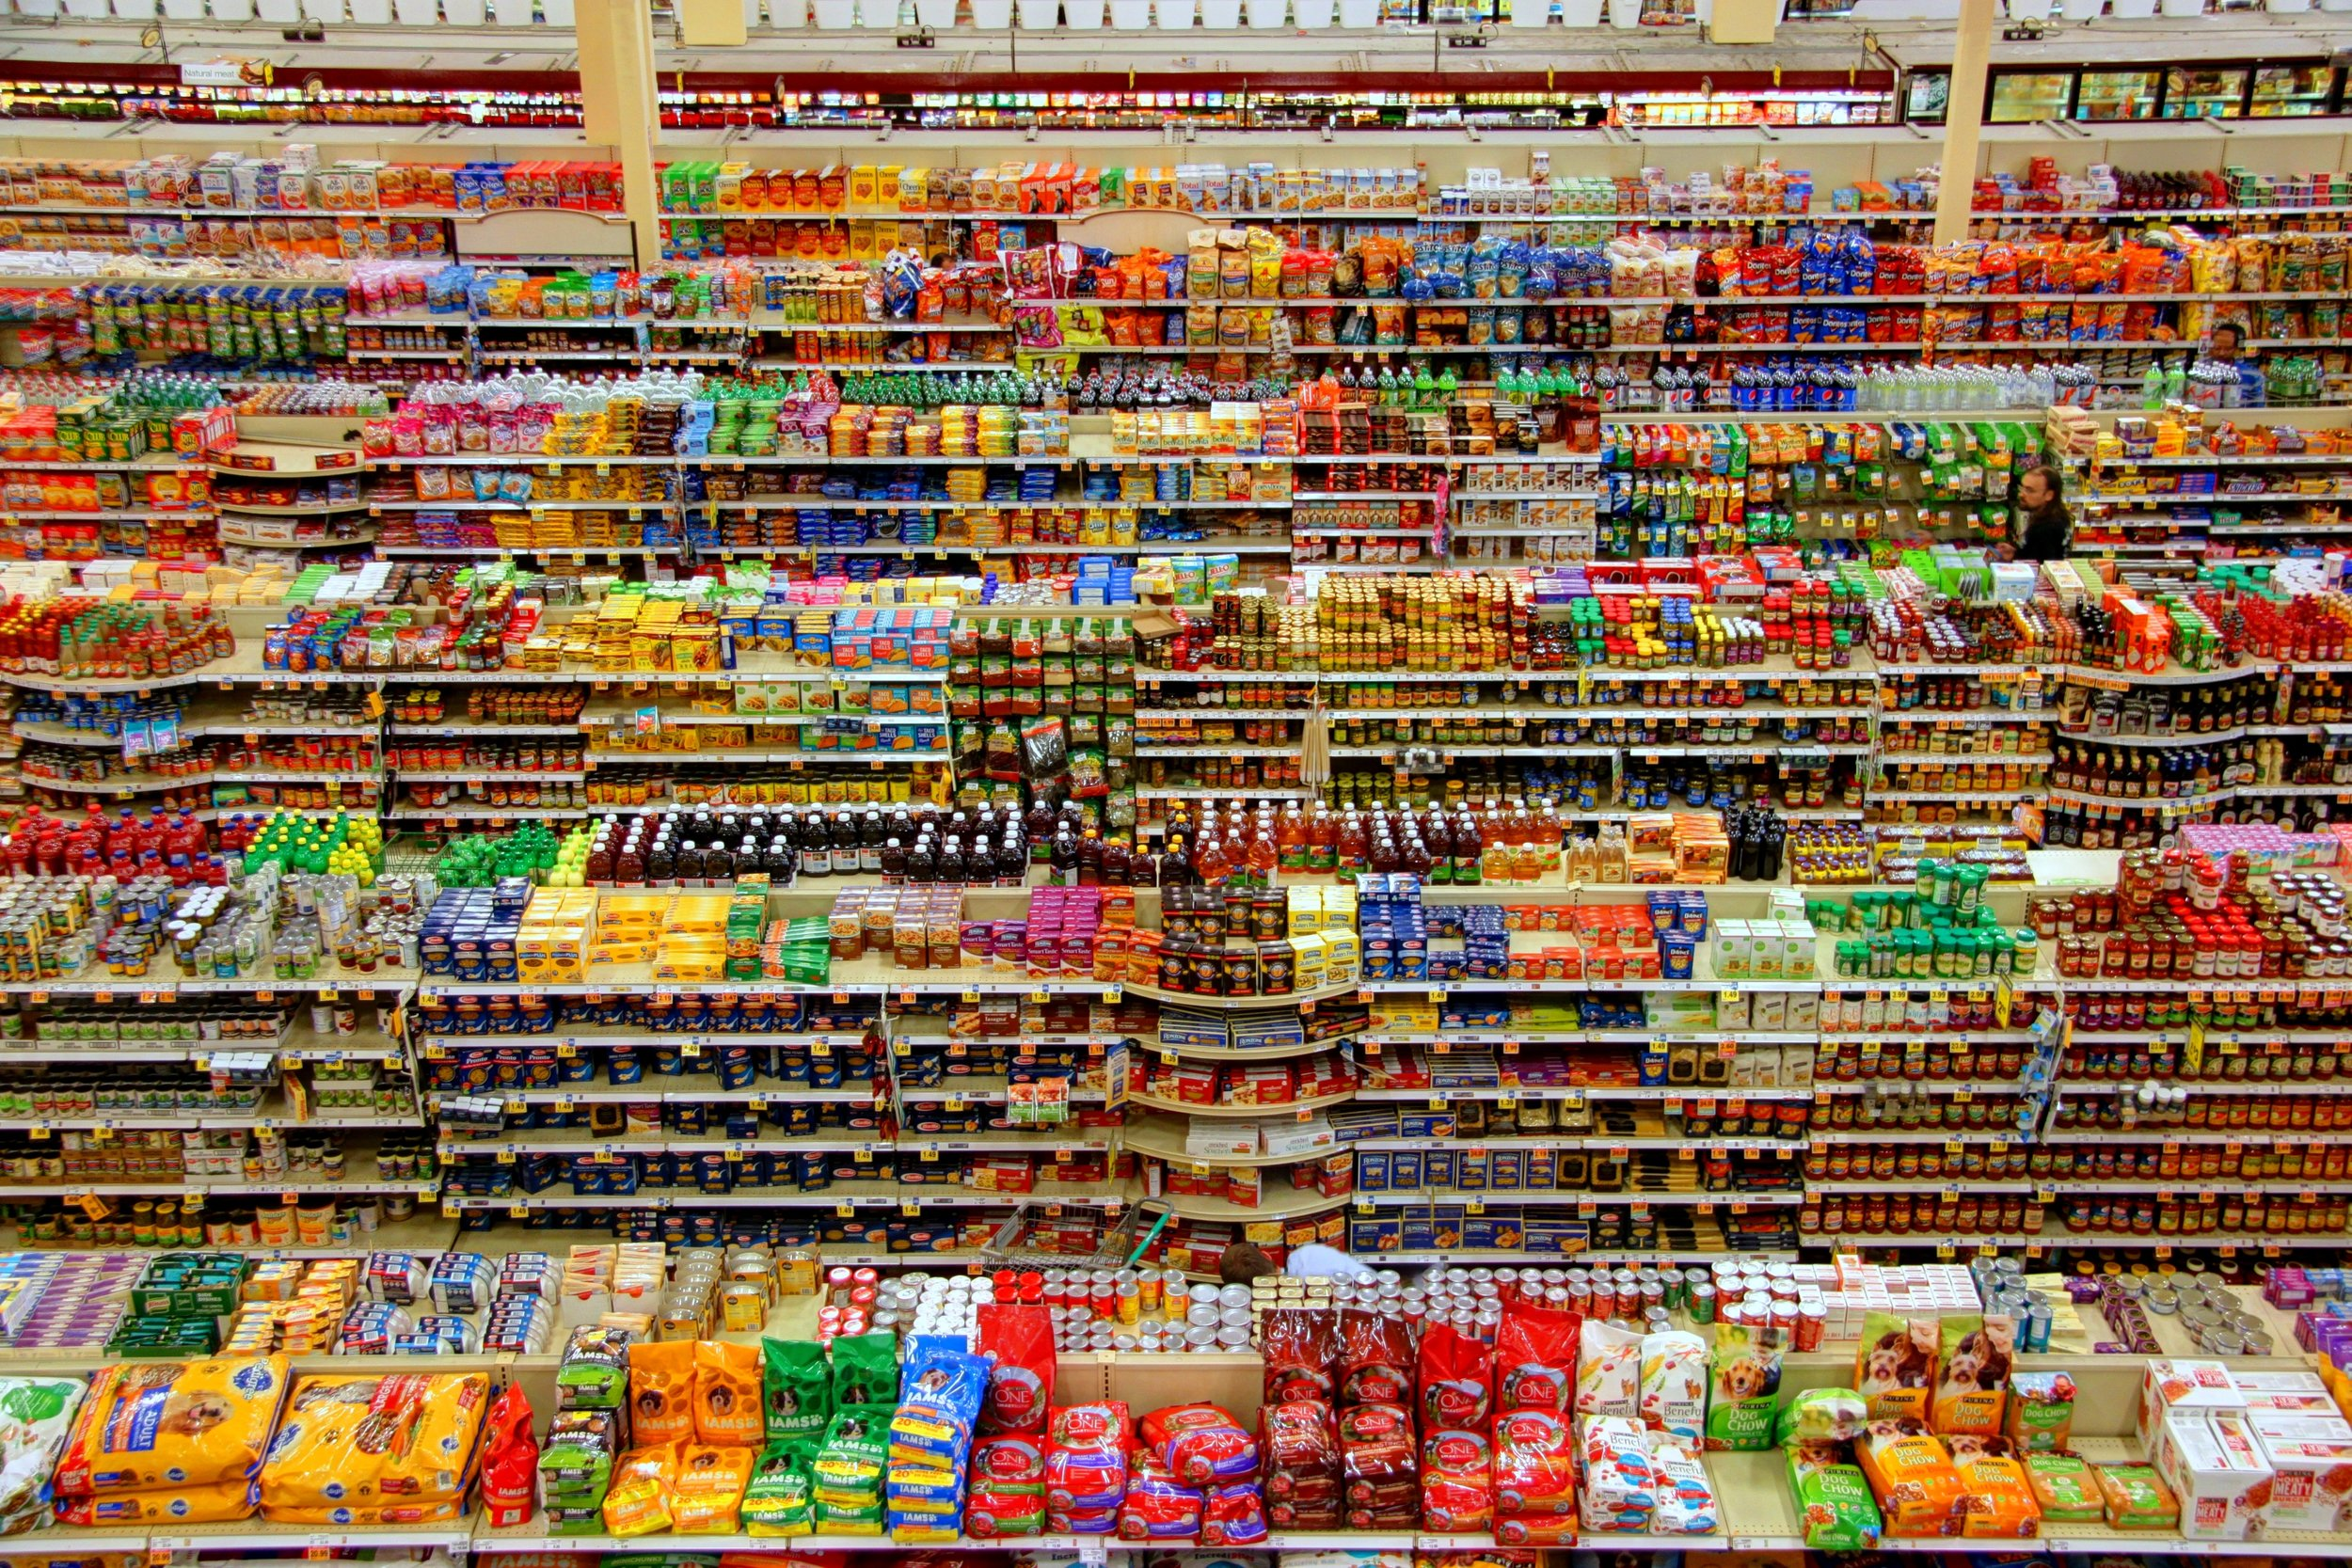 Supermarket shelves - peter-bond-510614-unsplash.jpg